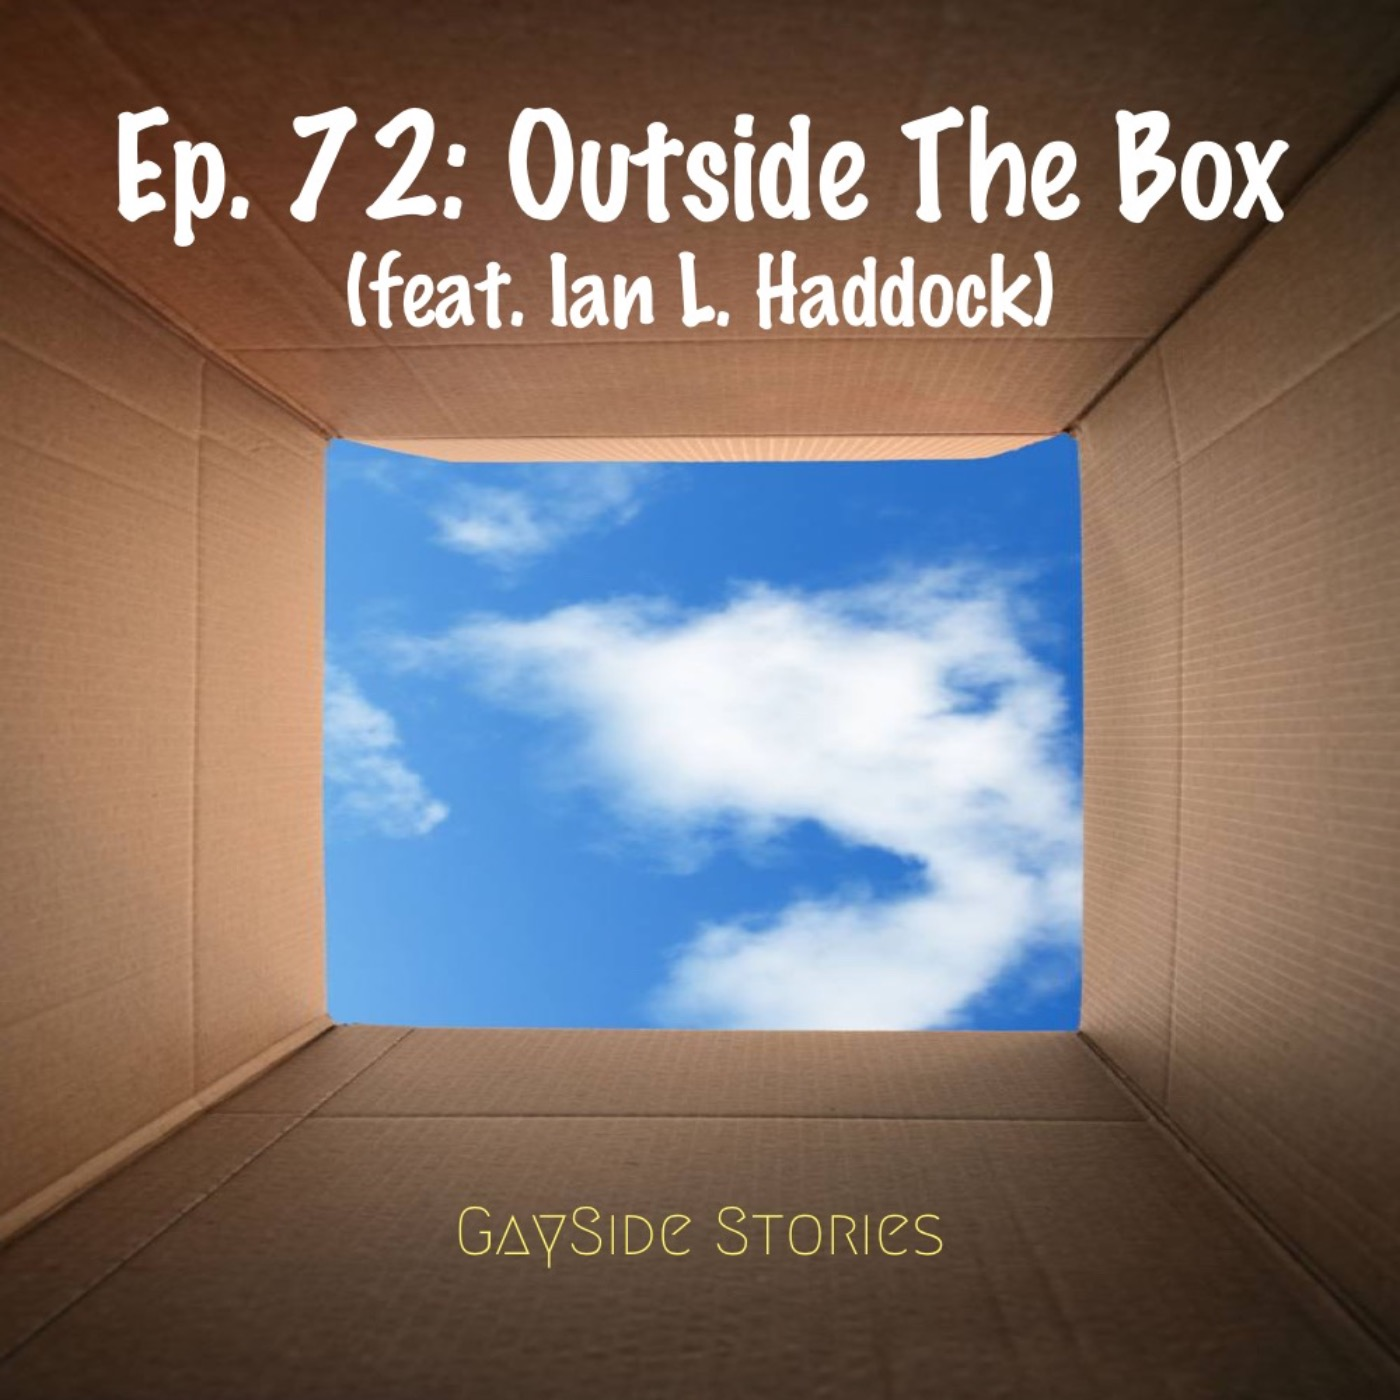 Ep. 72 - Outside The Box (feat. Ian L. Haddock of the D'CK&DaBOX Podcast)